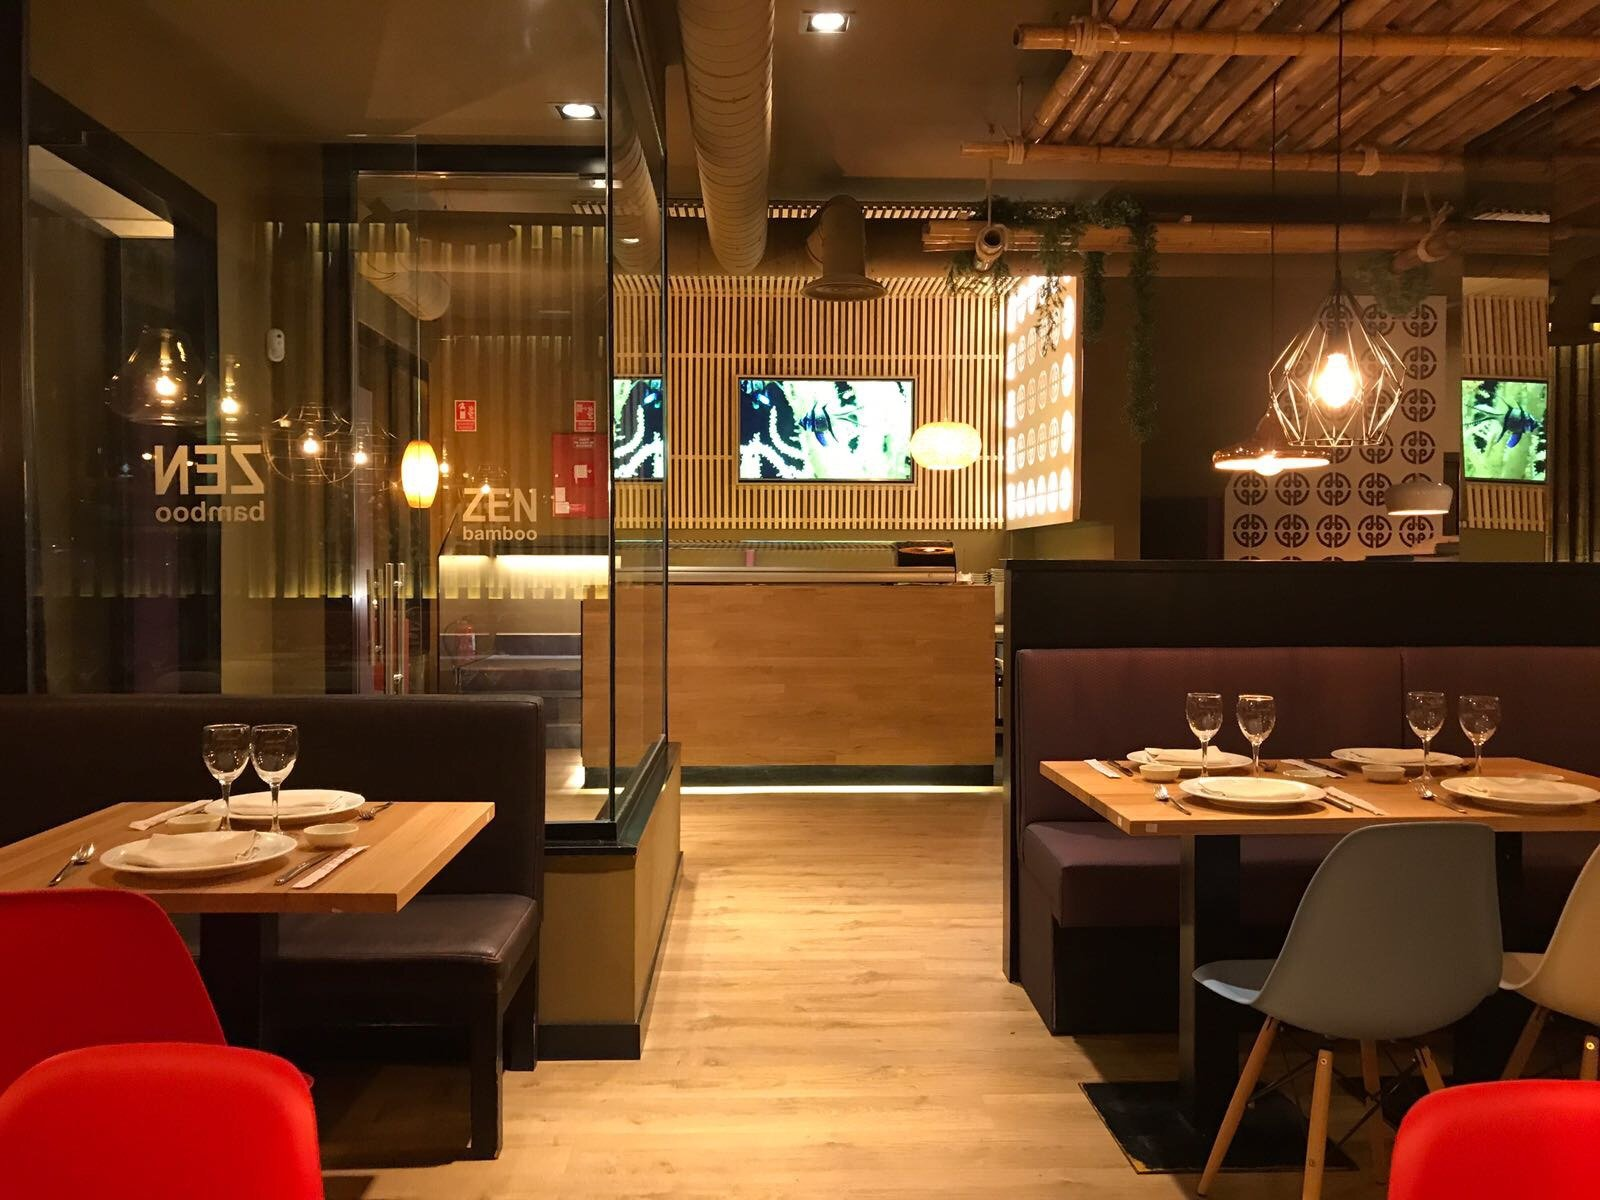 zen bamboo, madrid - restaurant reviews, phone number & photos